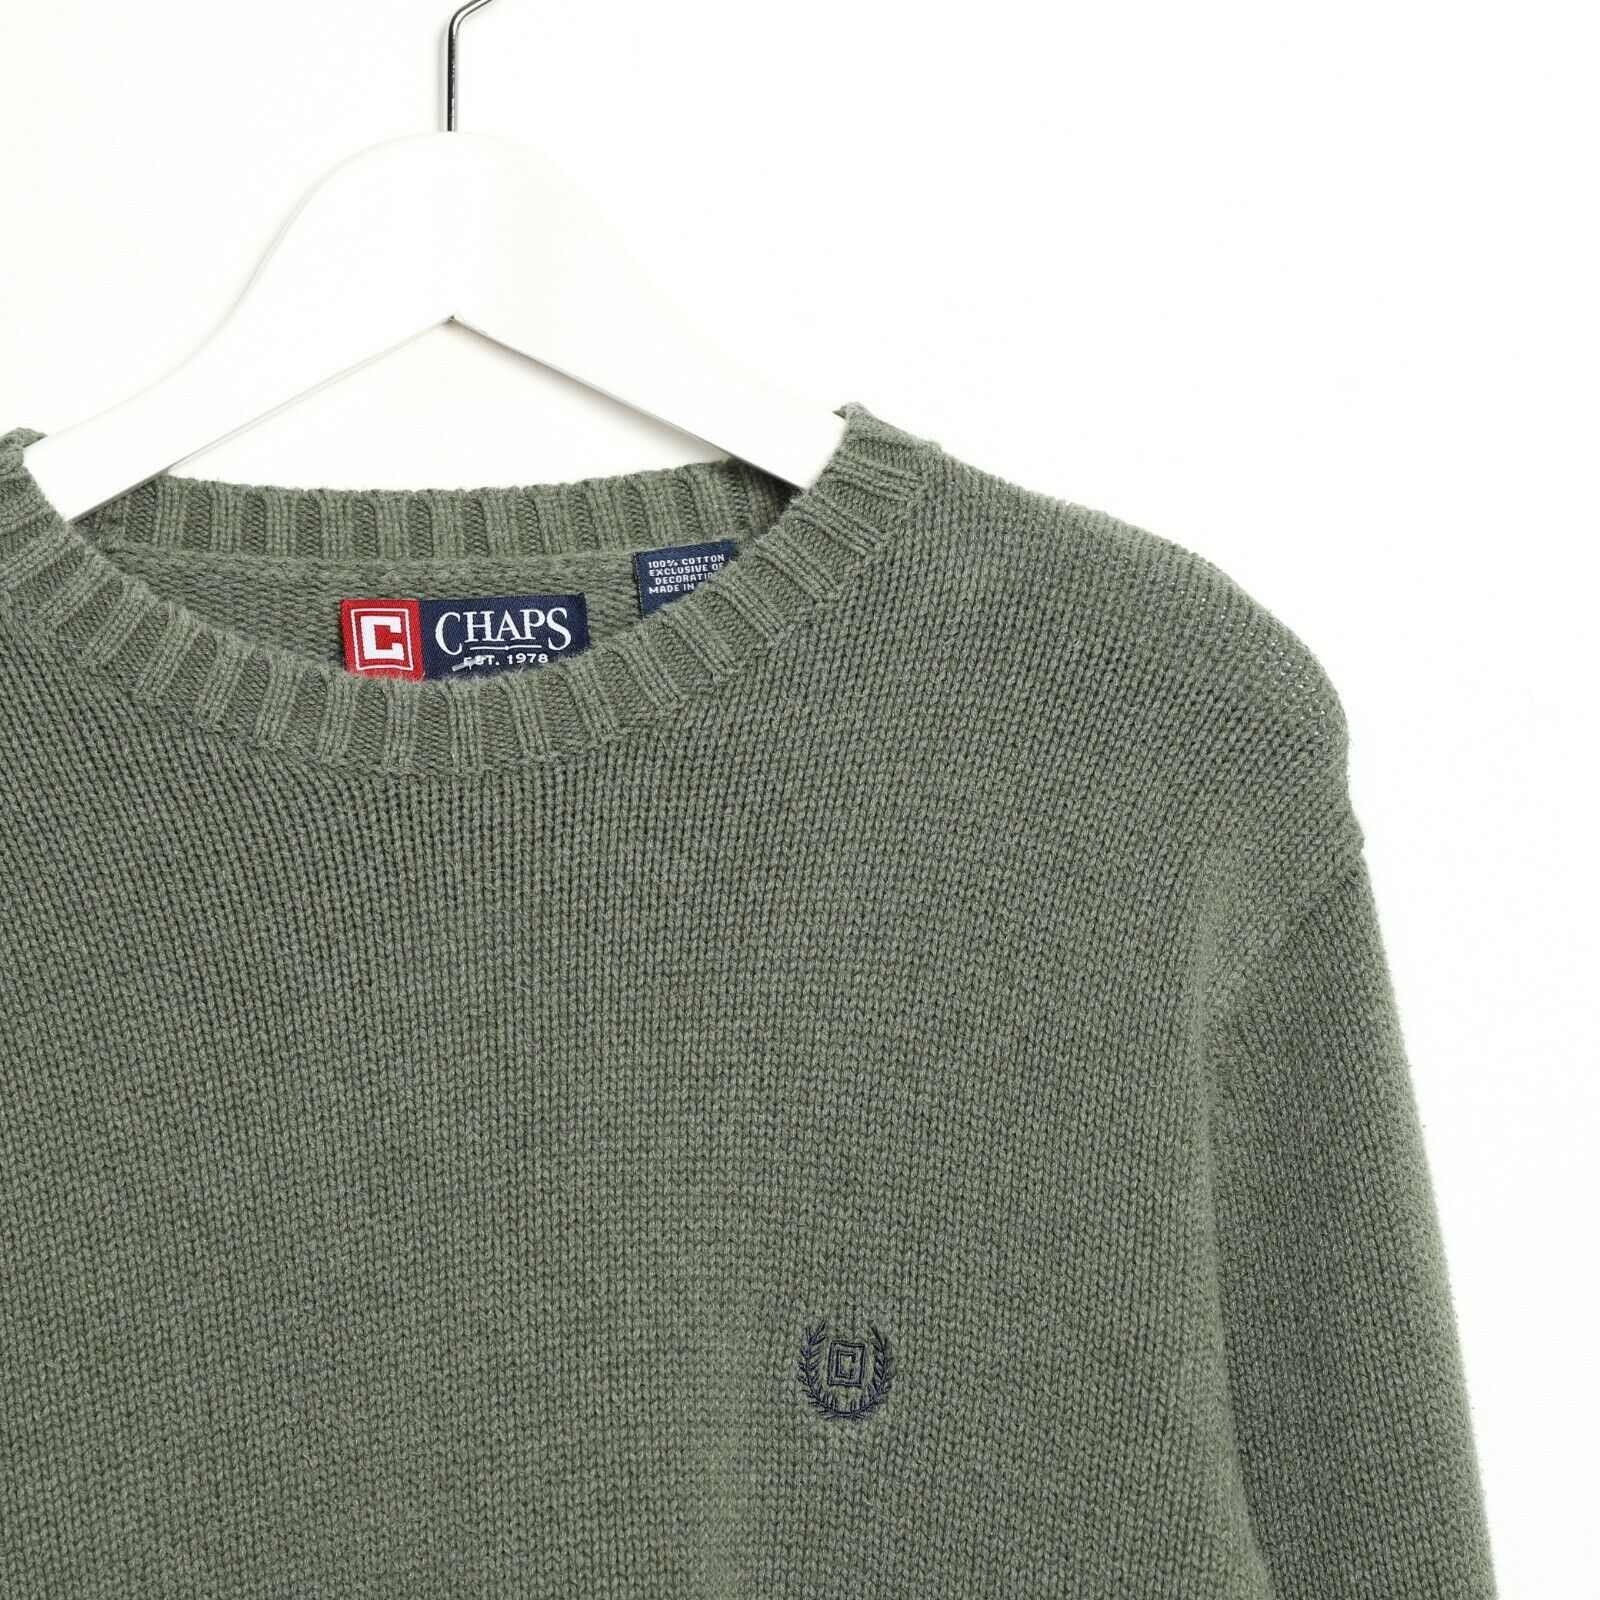 Vintage CHAPS RALPH LAUREN Small Crest Logo Knitted Sweatshirt Green | Small S